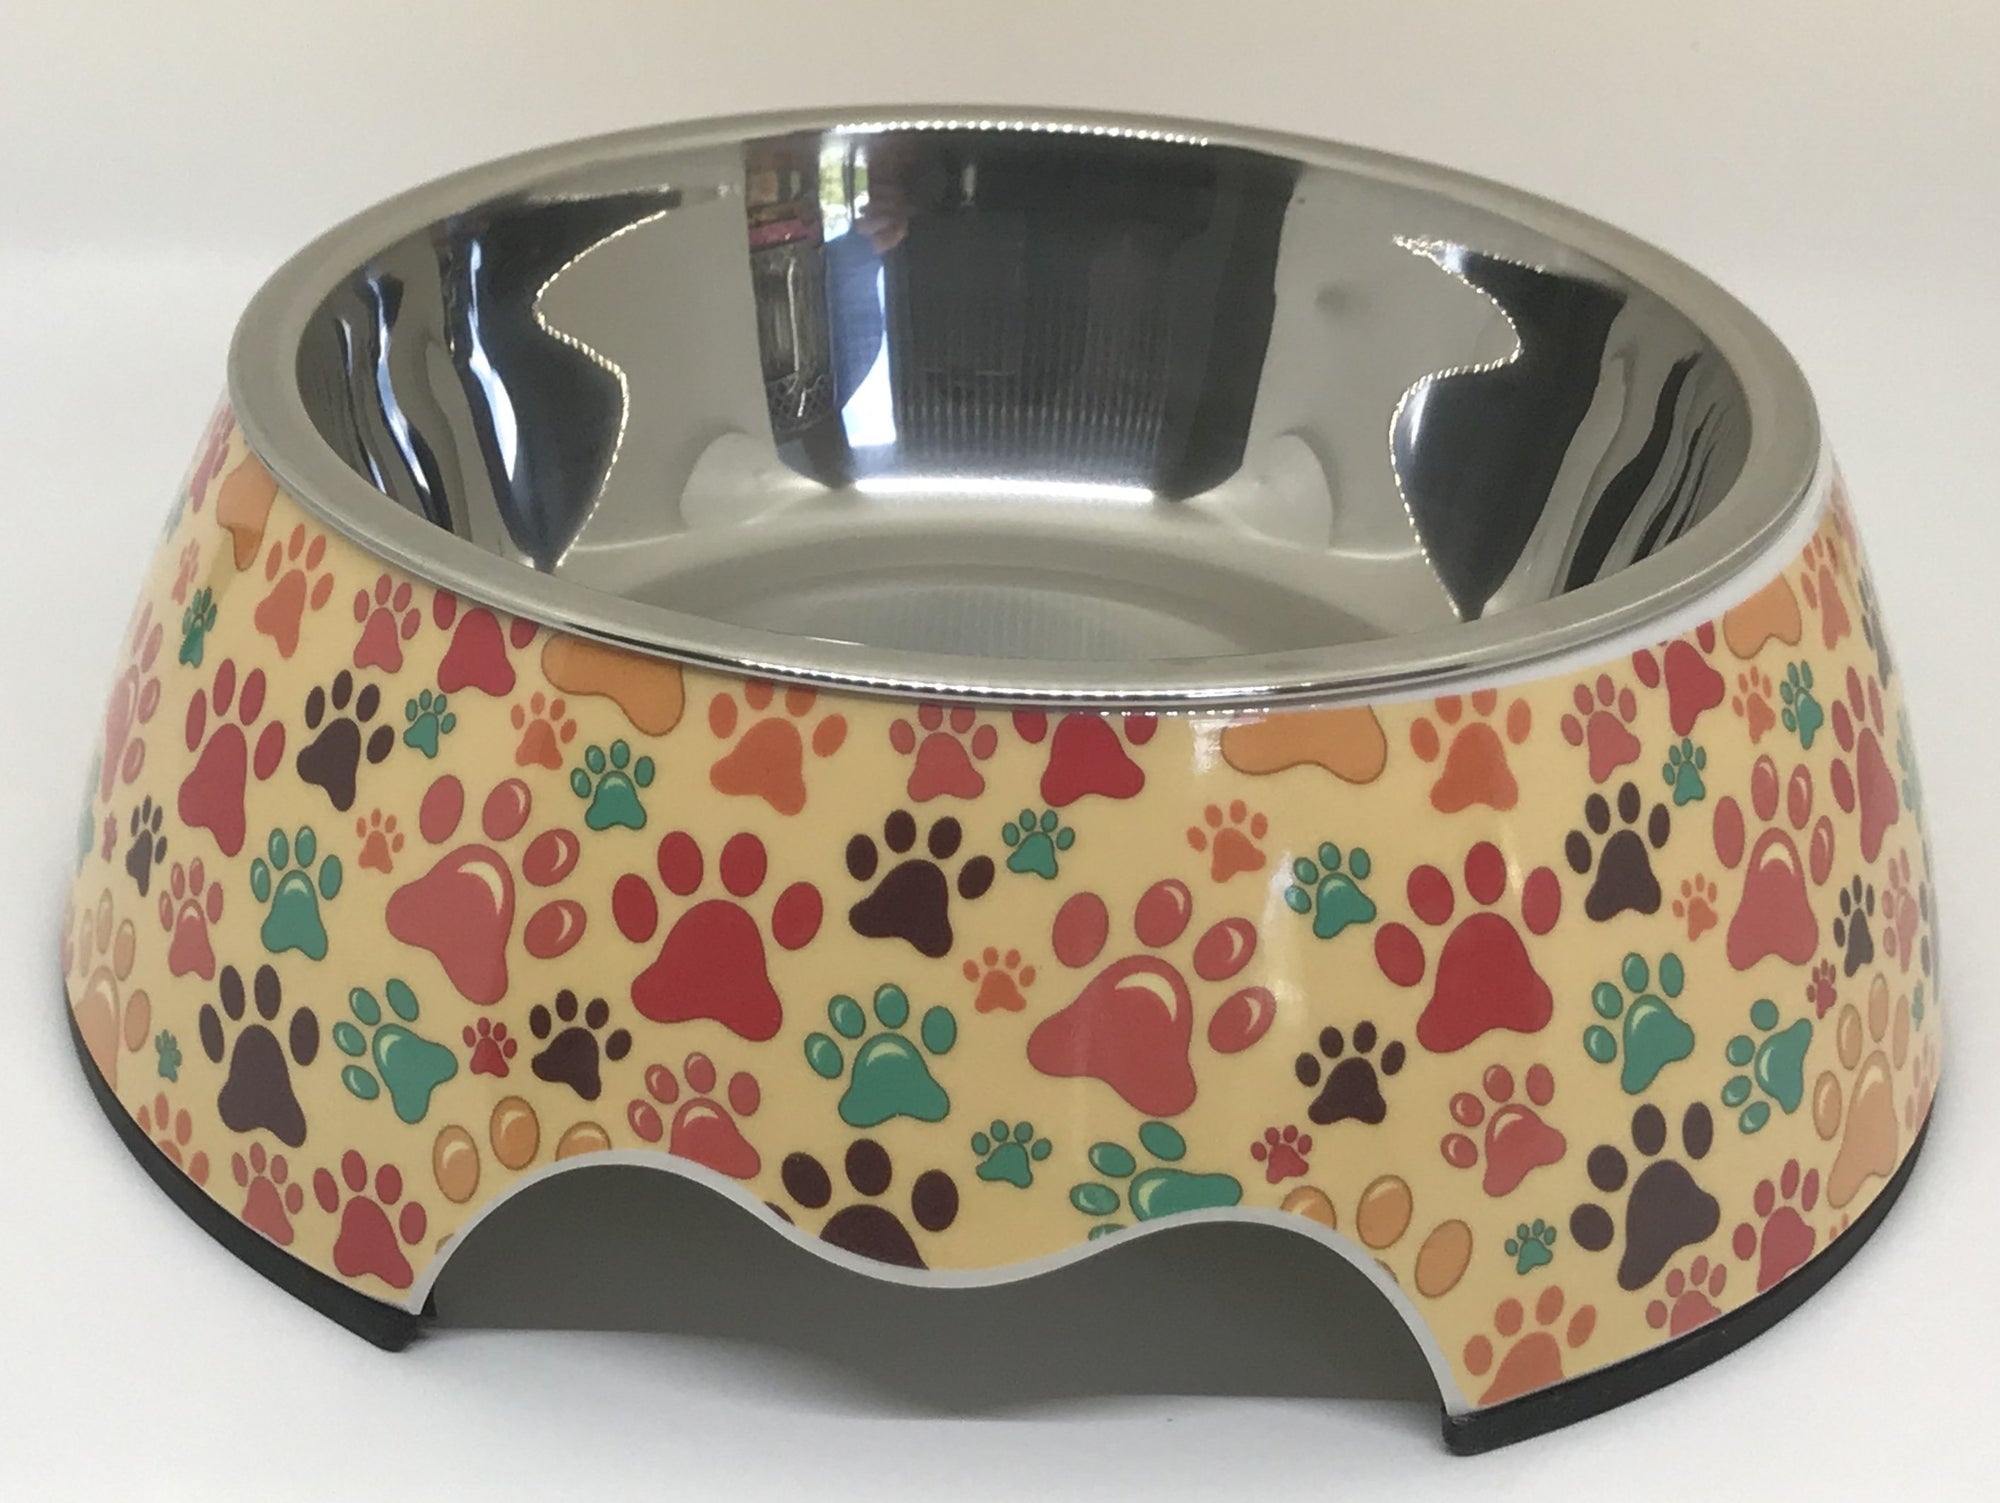 Paws in the Air Medium Dog Bowl